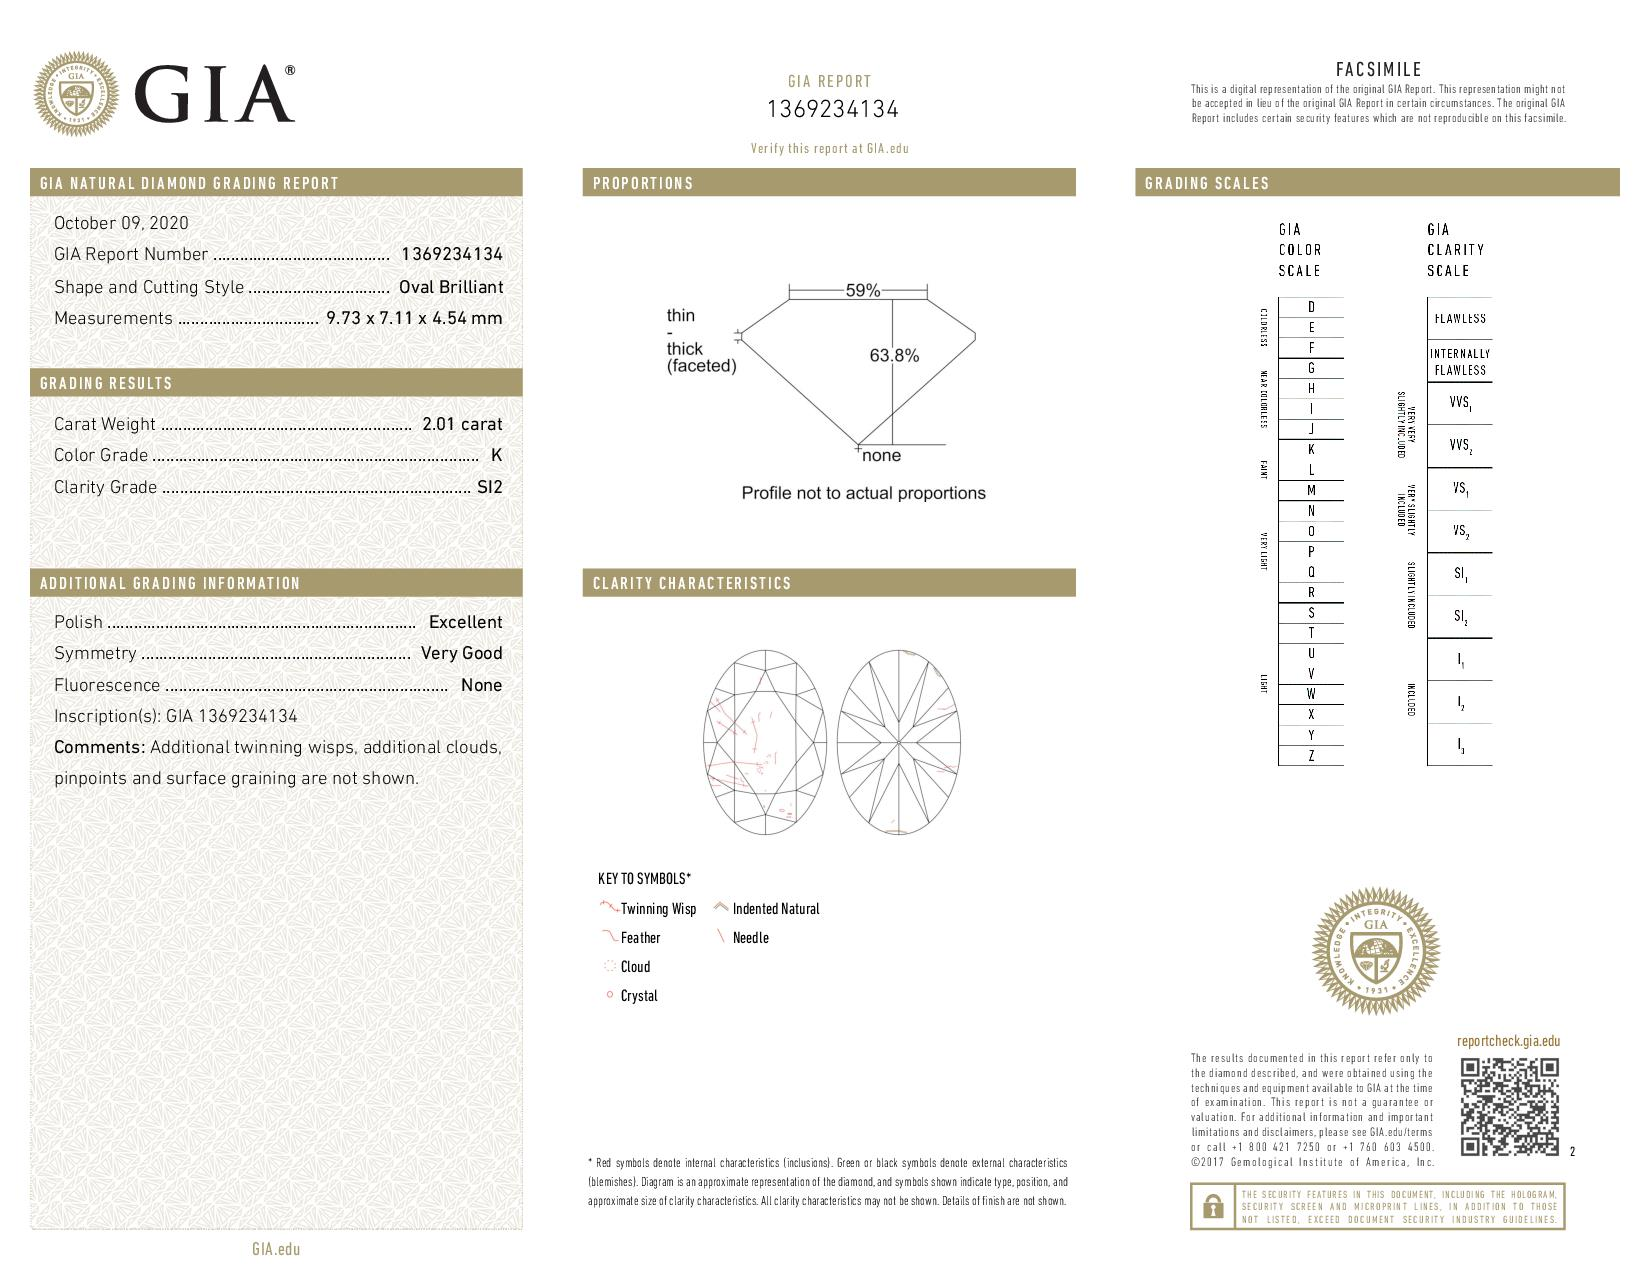 This is a 2.01 carat oval shape, K color, SI2 clarity natural diamond accompanied by a GIA grading report.